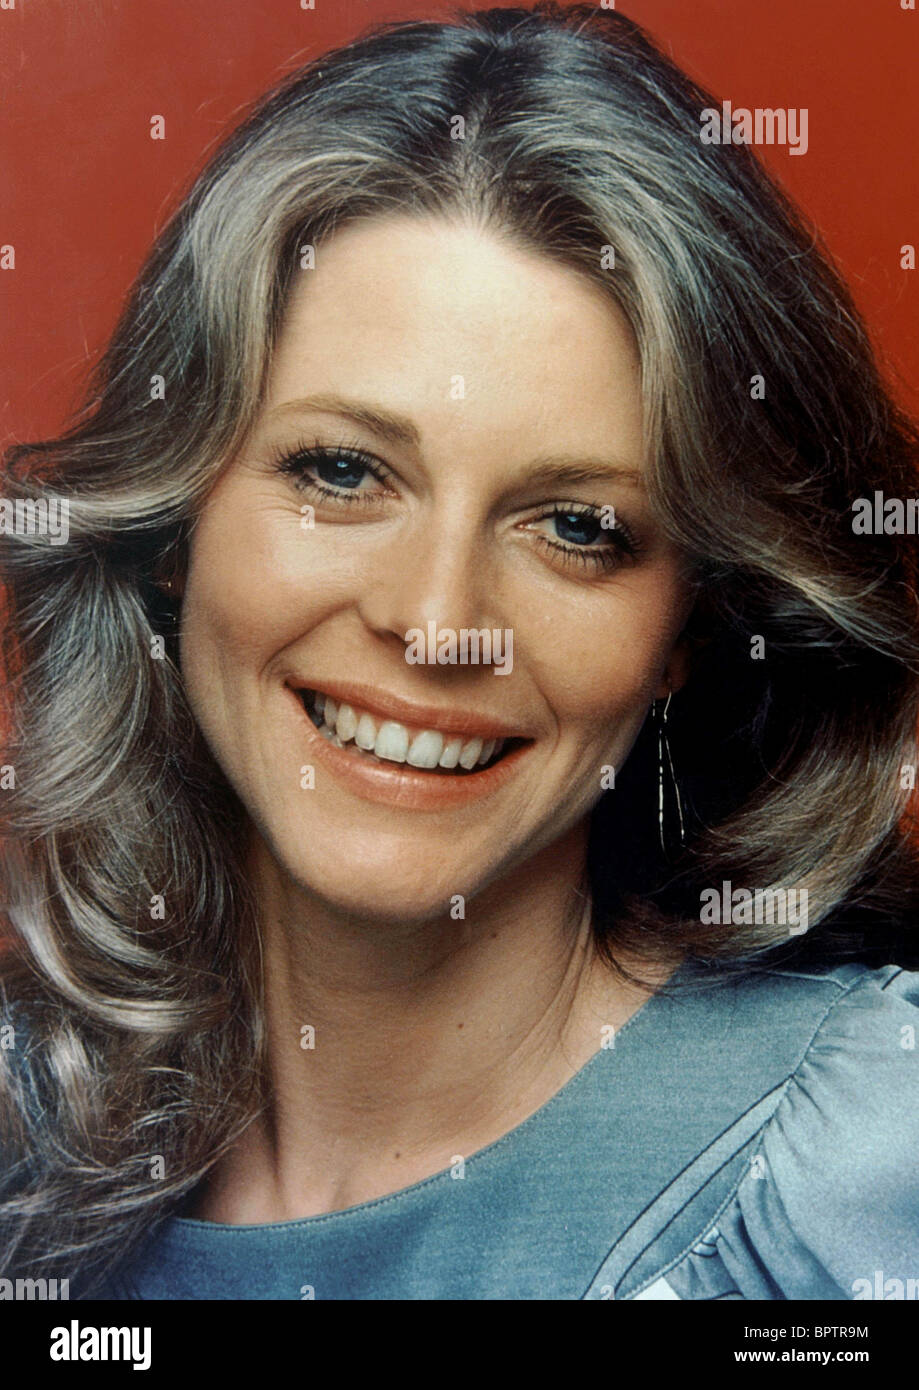 LINDSAY WAGNER ACTRESS (1976) - Stock Image